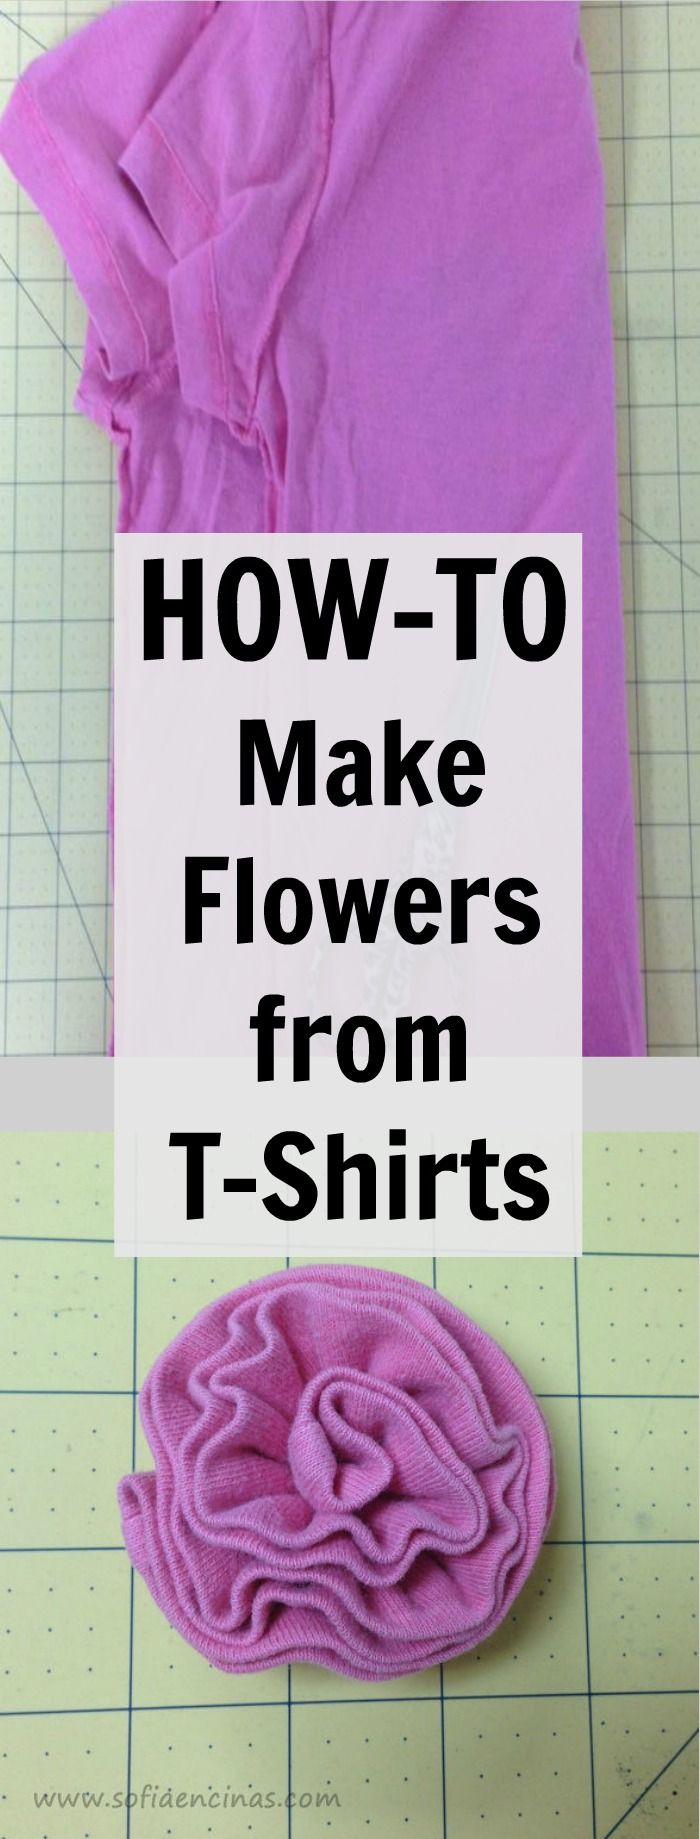 Best 20 t shirt flowers ideas on pinterest t shirt for How to make easy crafts step by step